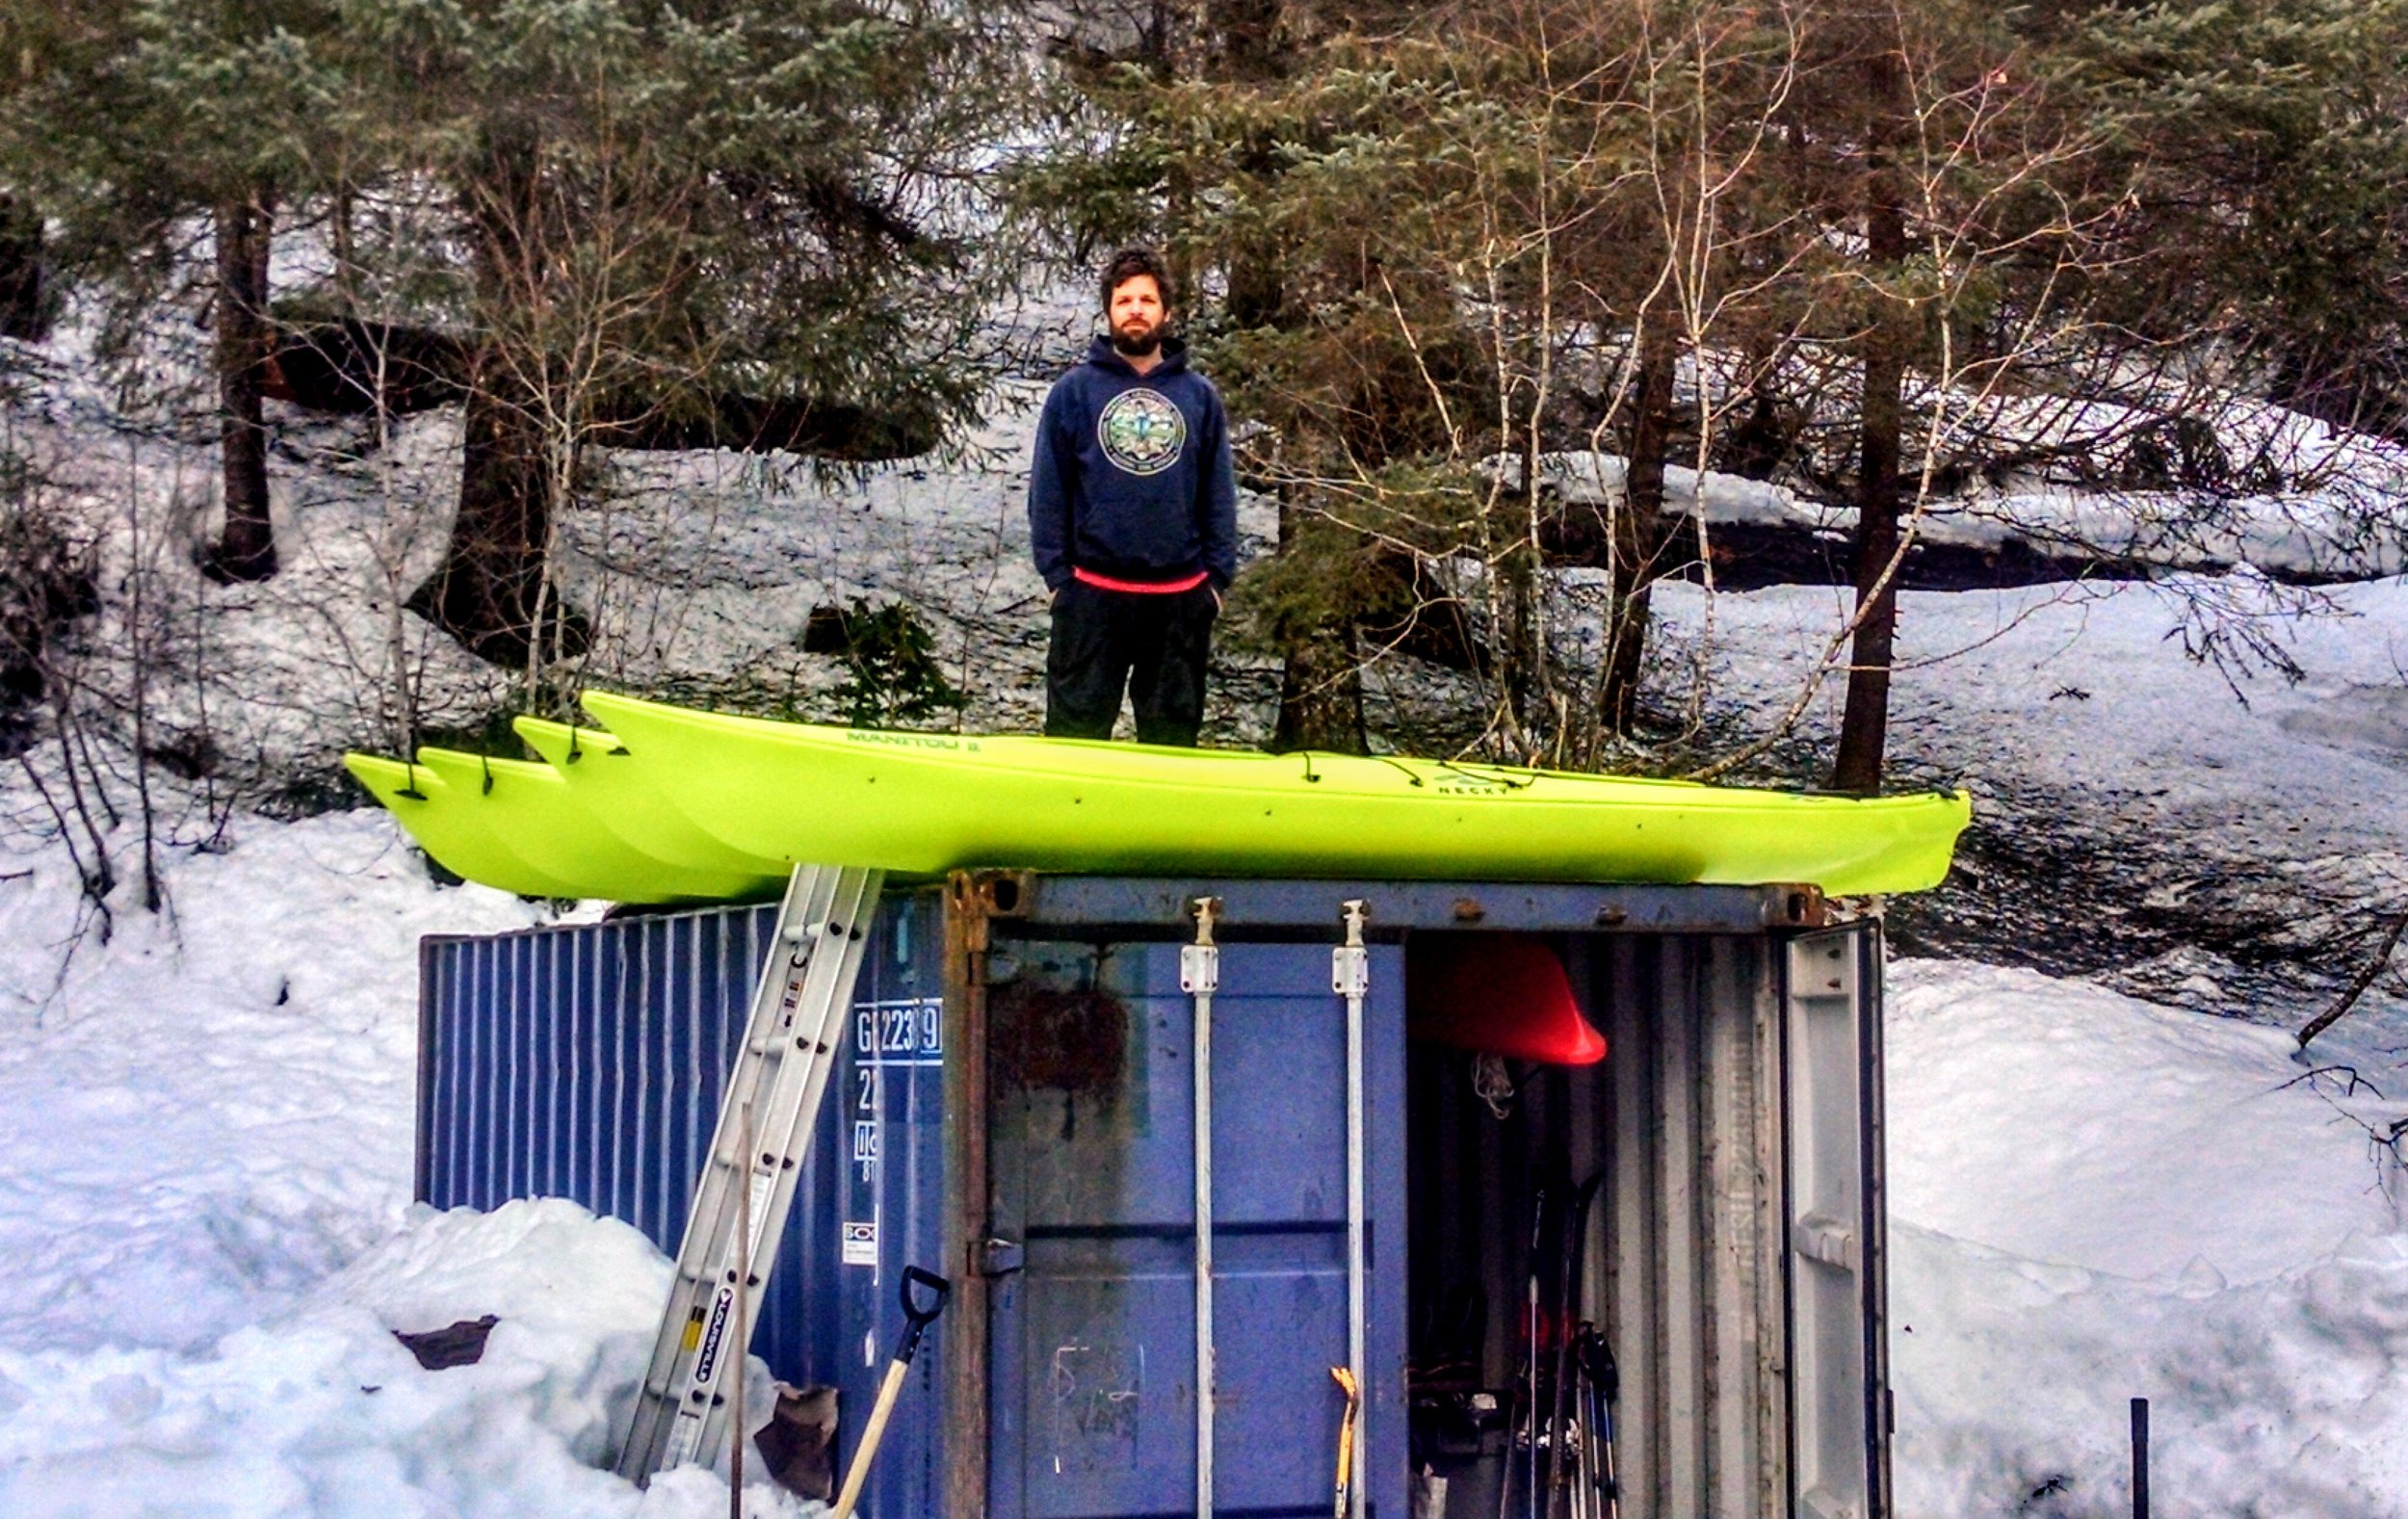 Jason with the new kayaks on top of our storage conex. Our other three kayaks are hanging from the ceiling inside.